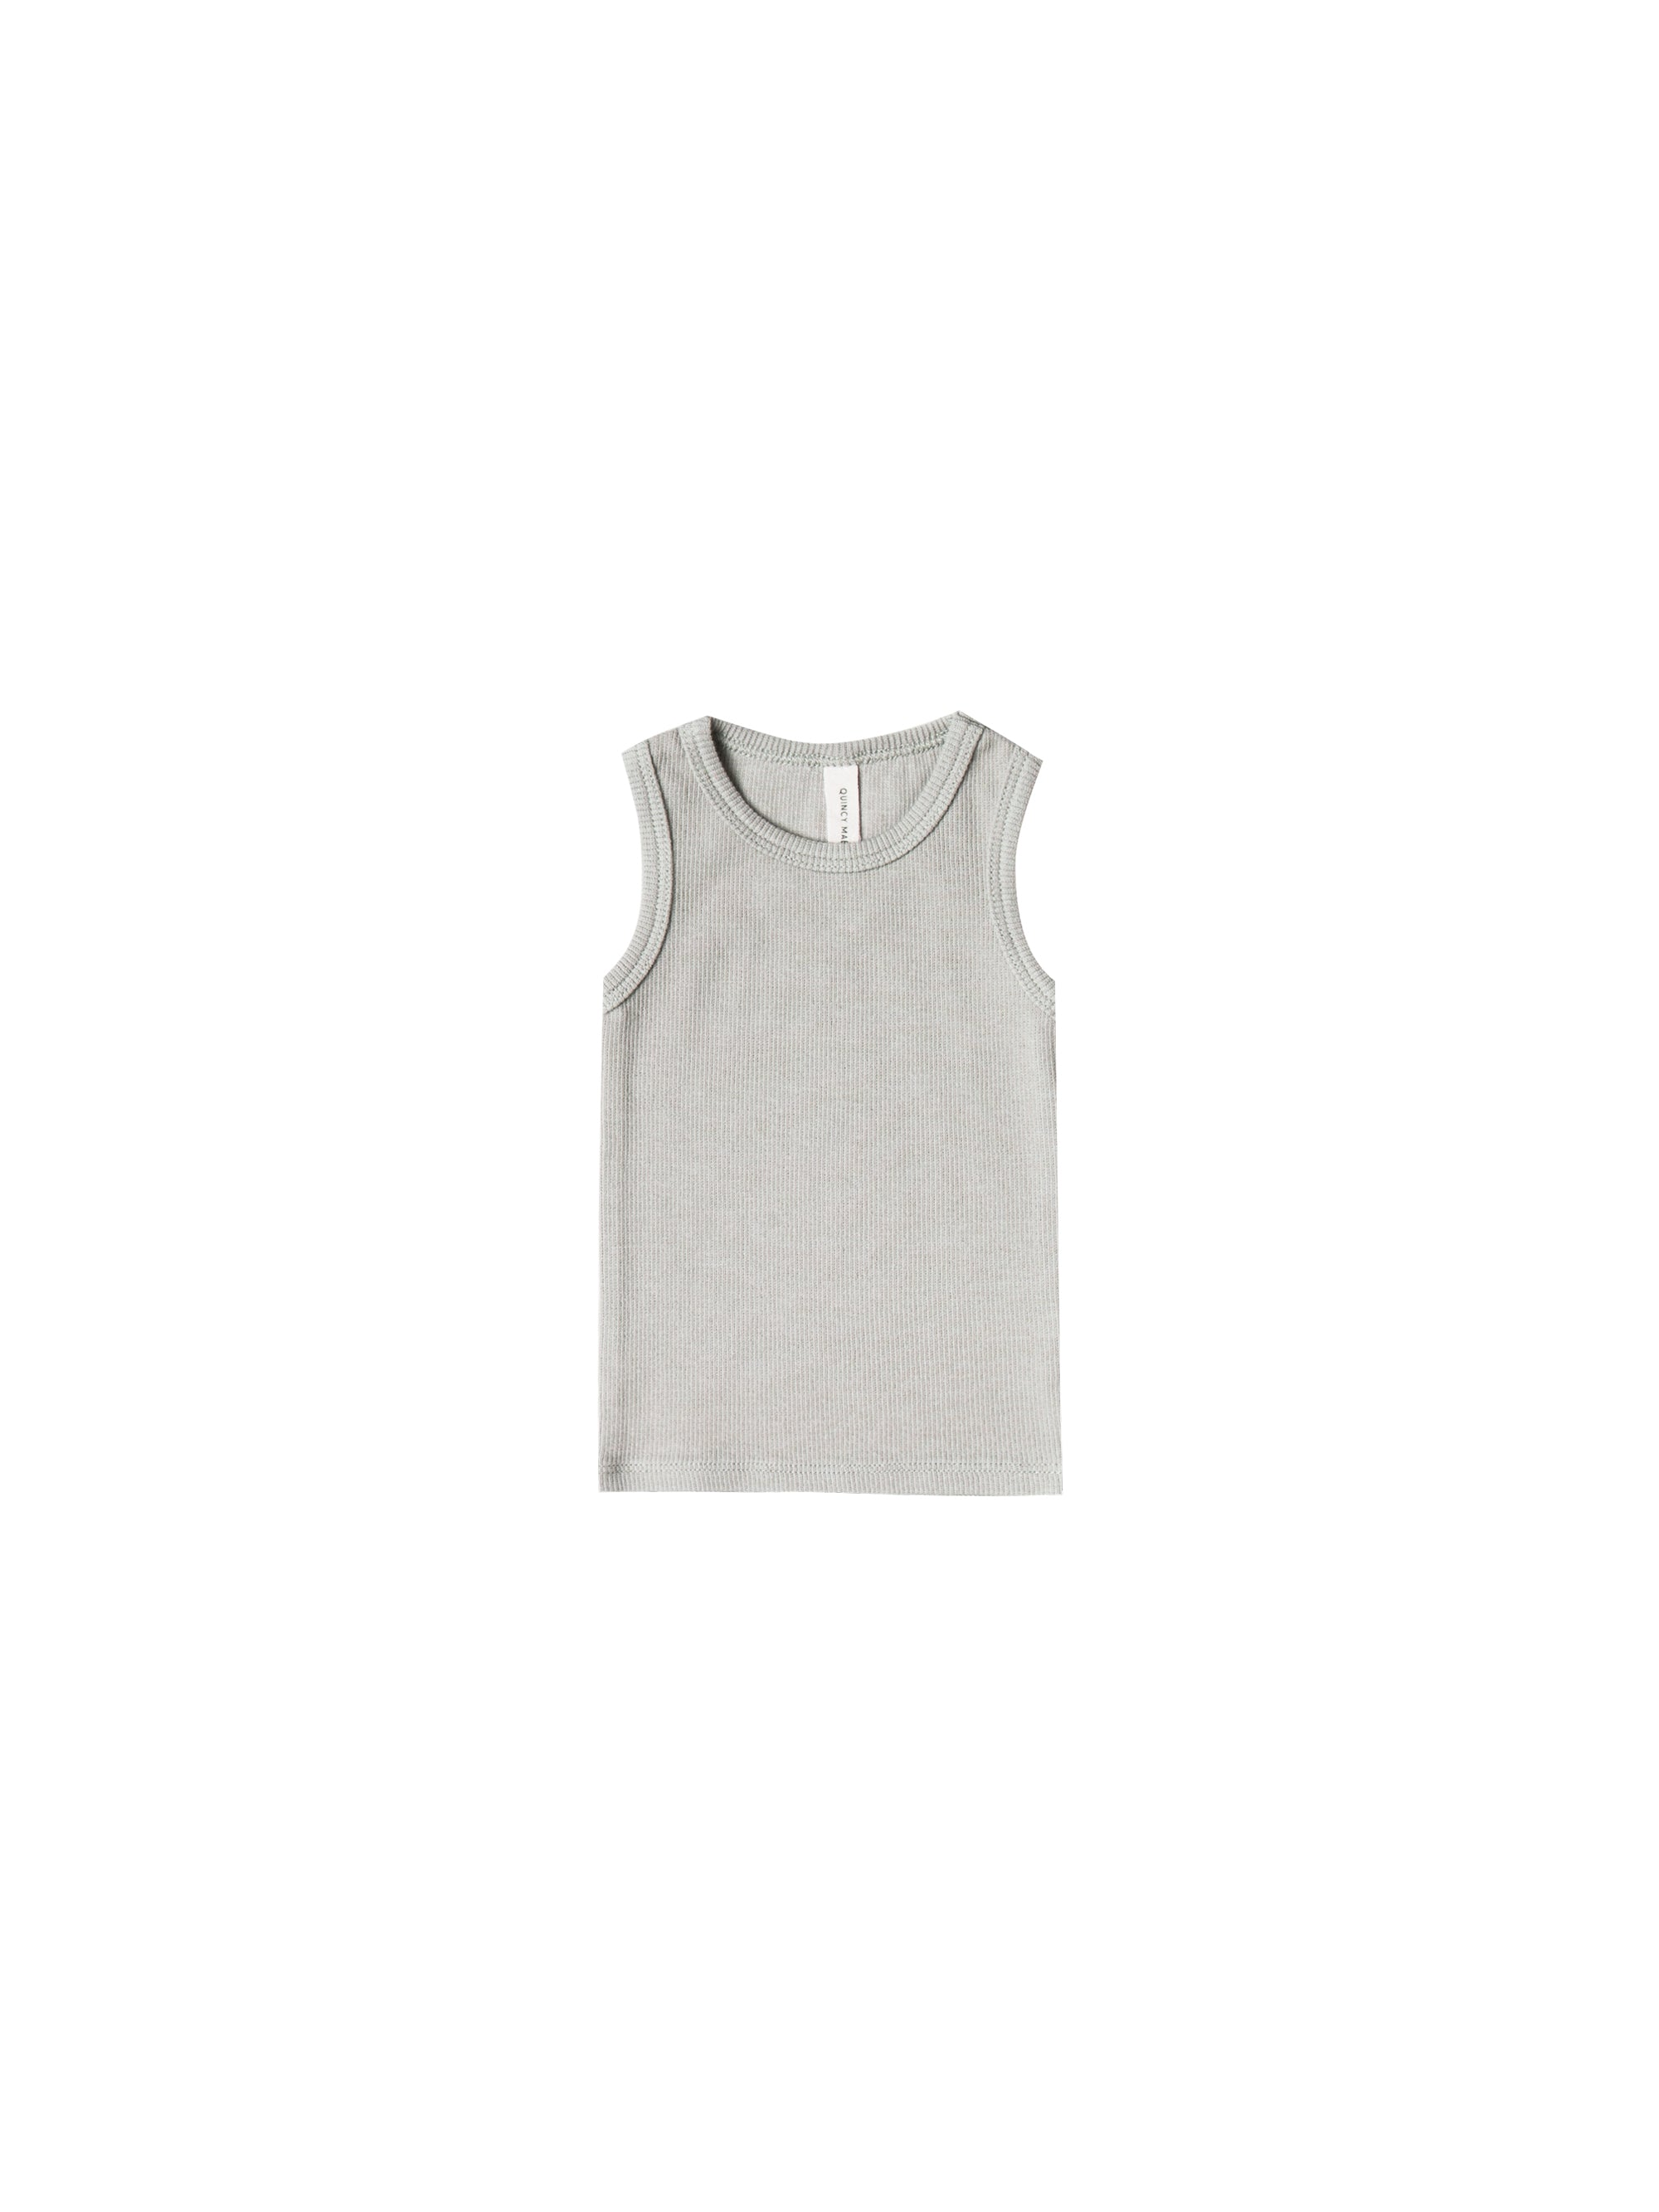 Quincy Mae - Ribbed Tank (Ash) - Only 0/3 & 6/12